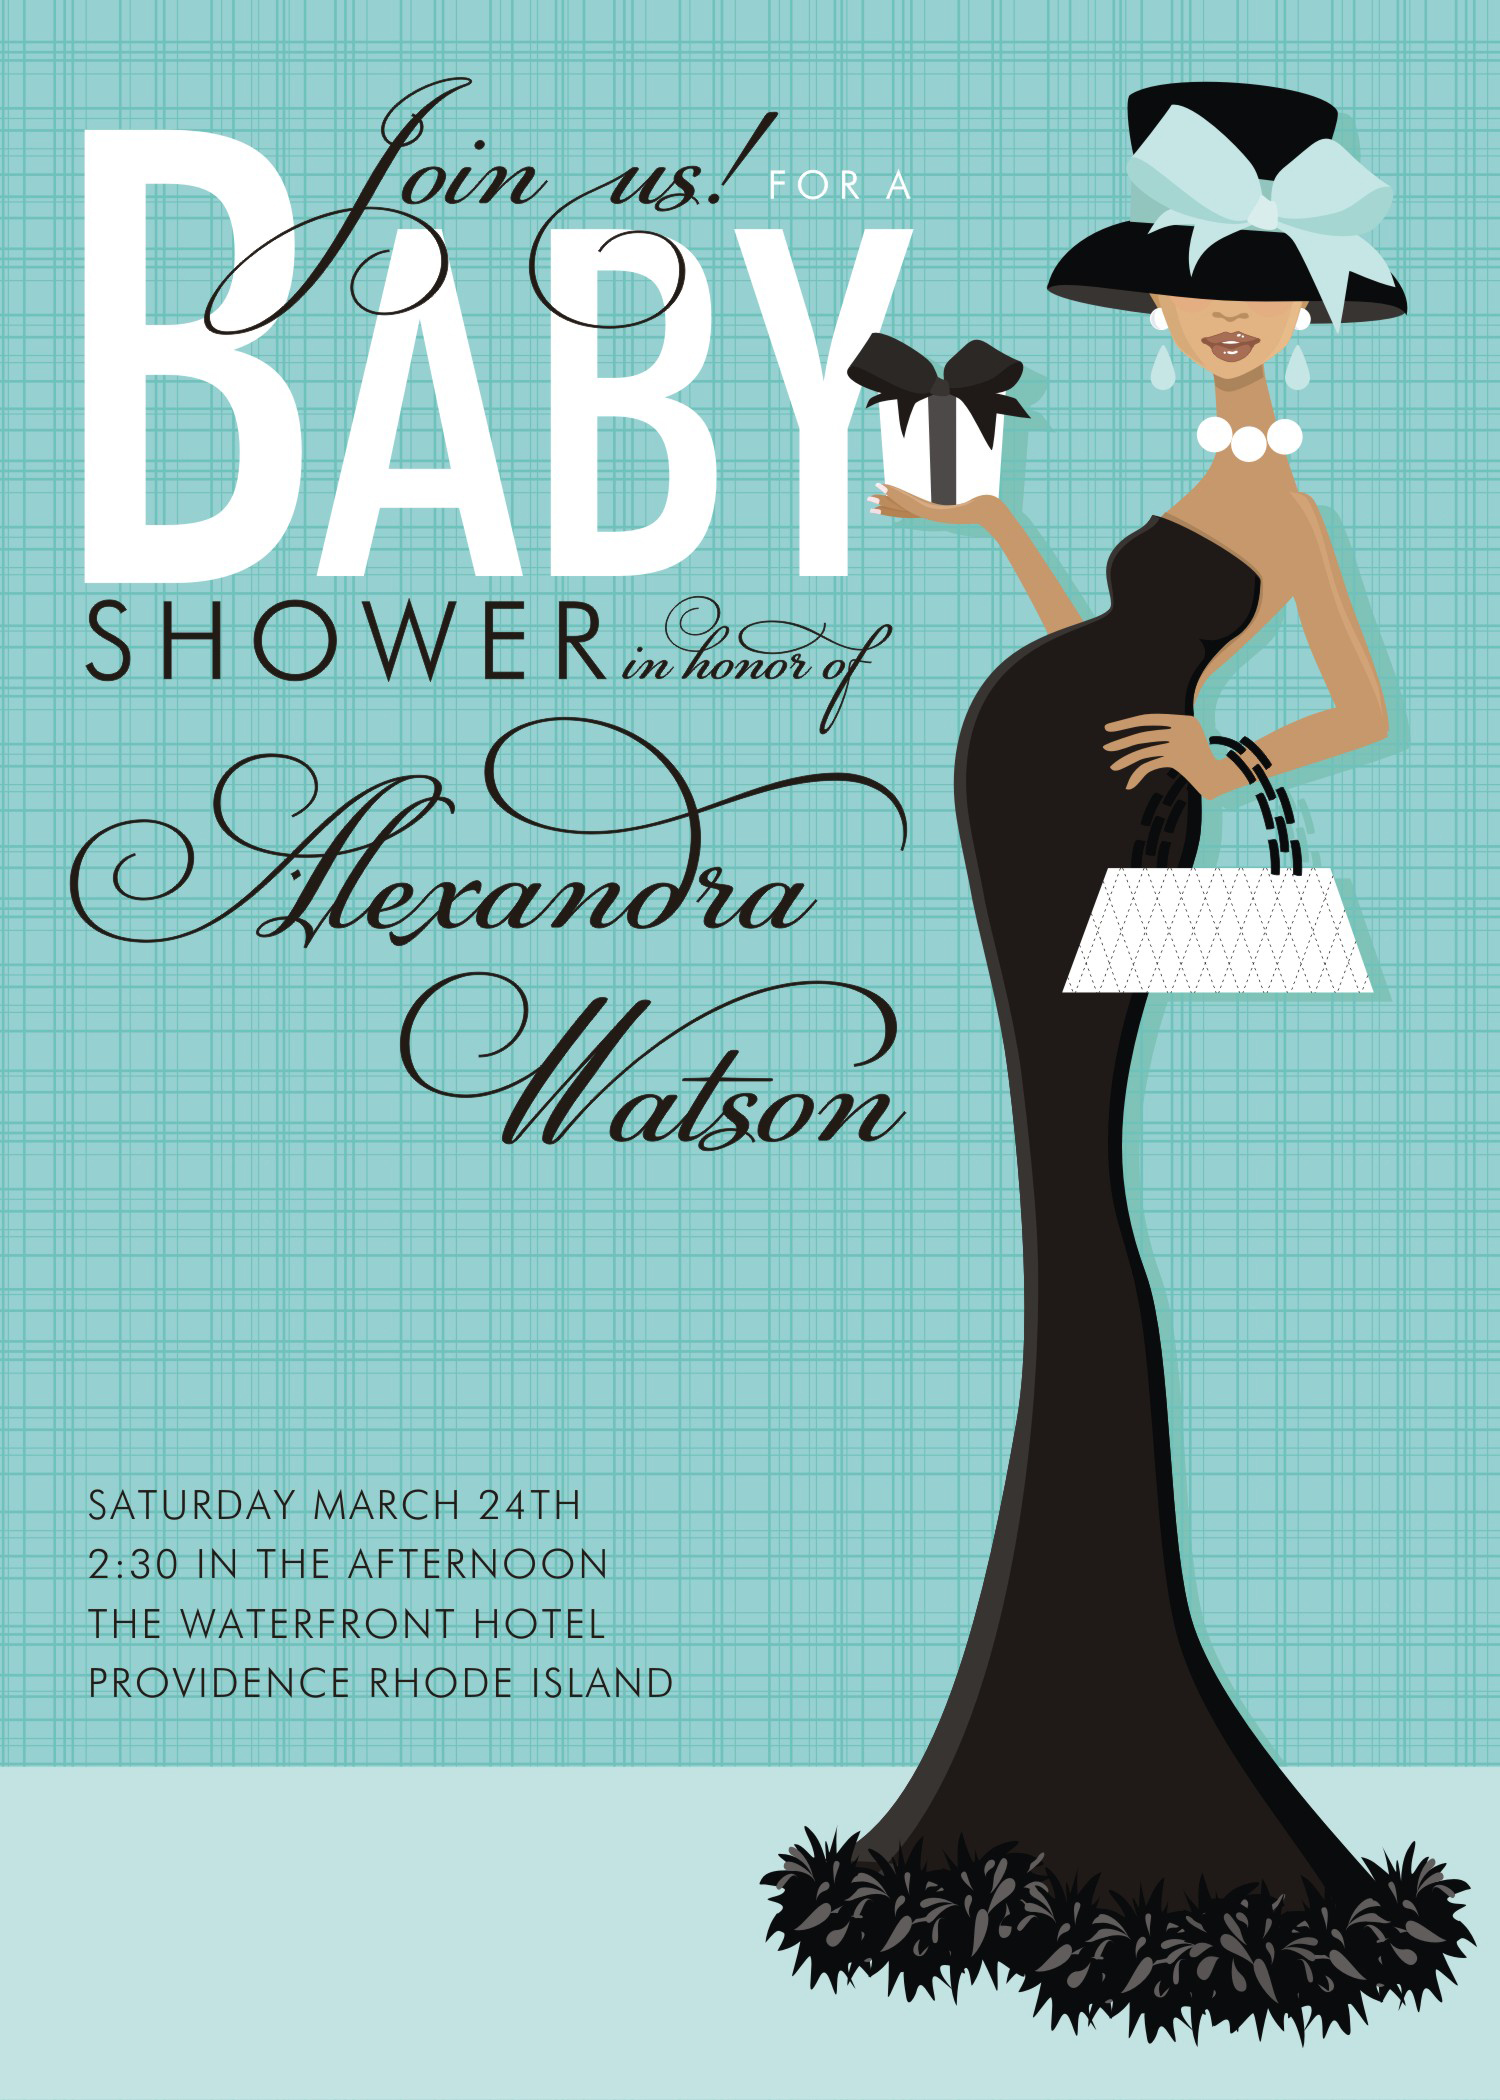 microsoft word invitation templates free, Baby shower